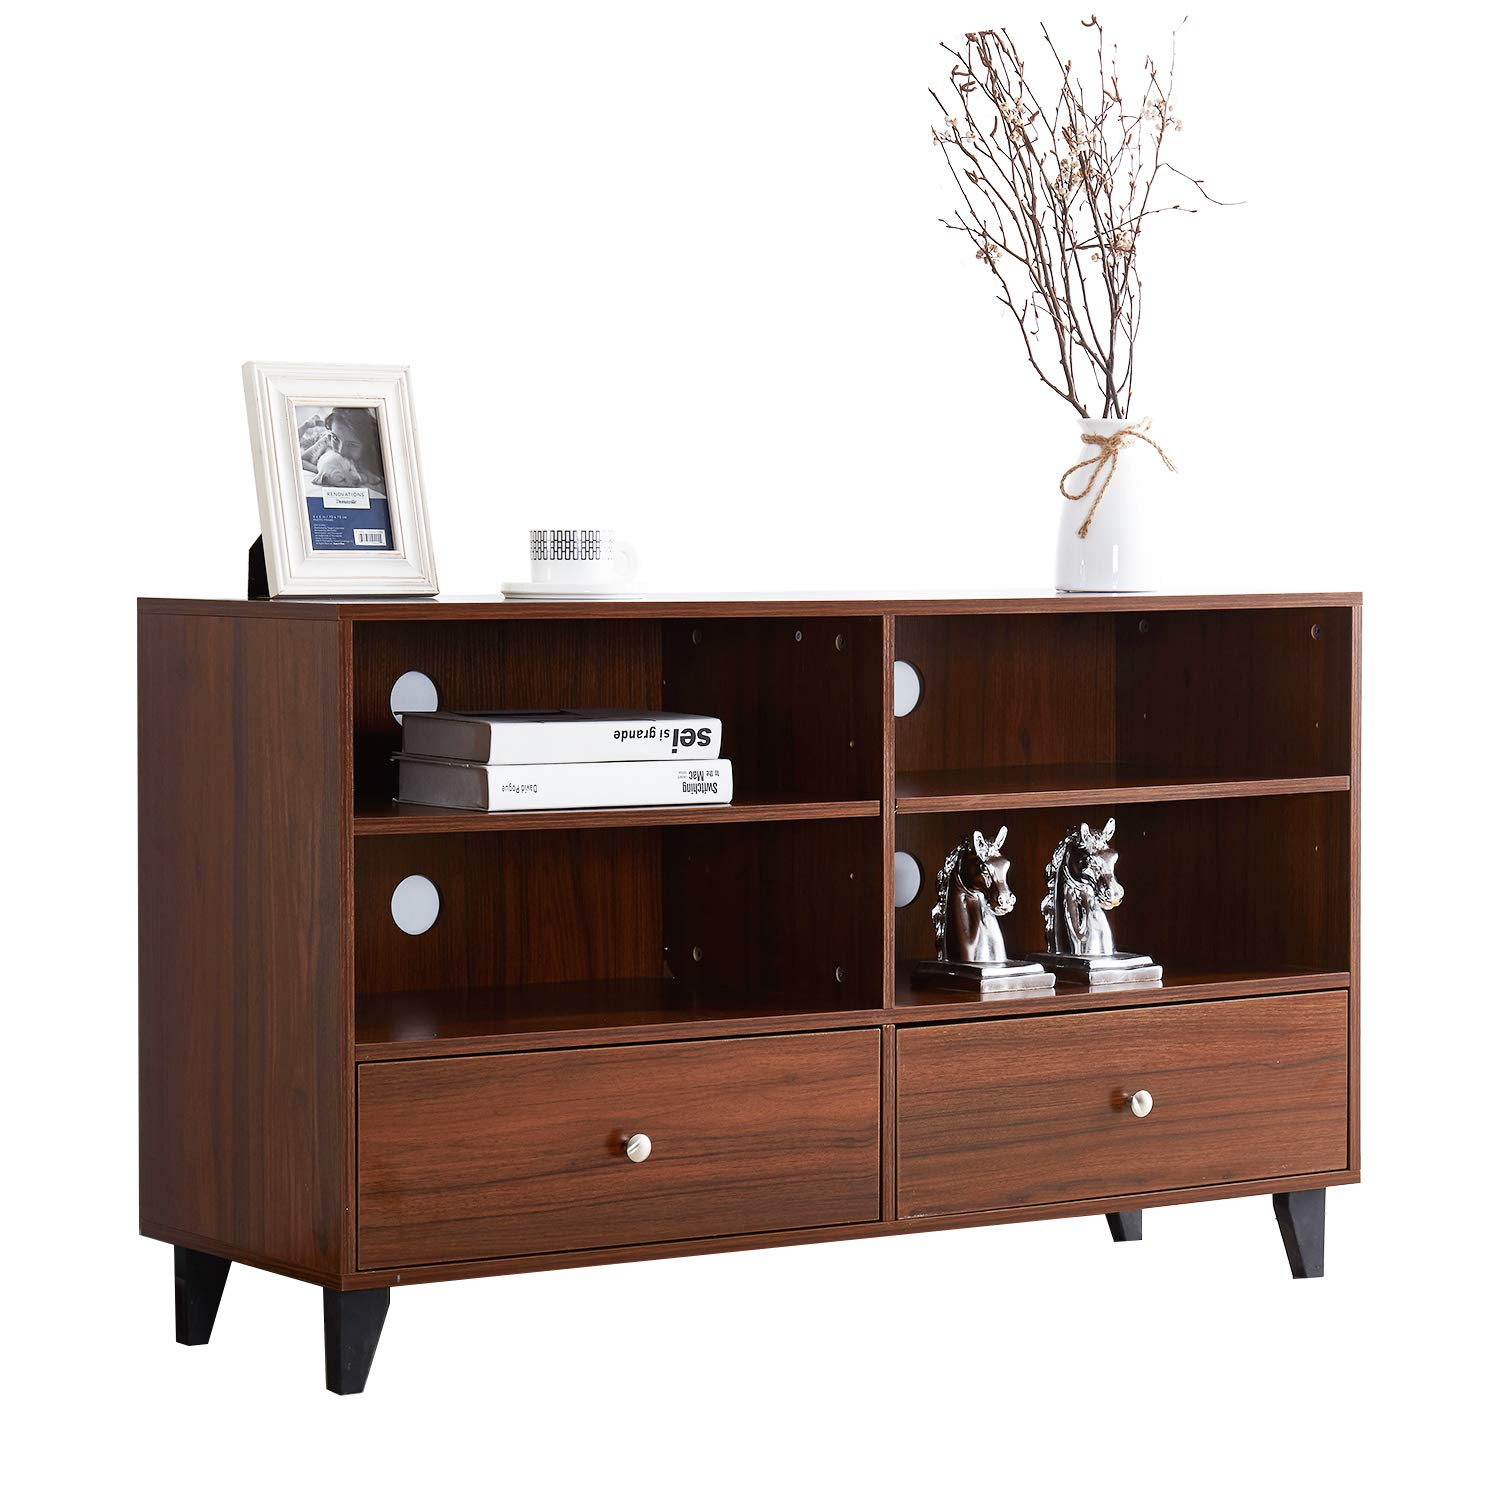 Soges Storage Cabinet Kitchen Sideboard Buffet Table Server Cabinet Cupboard with Drawers and Shelves Display Cabinet, Walnut HHGZ008-WN